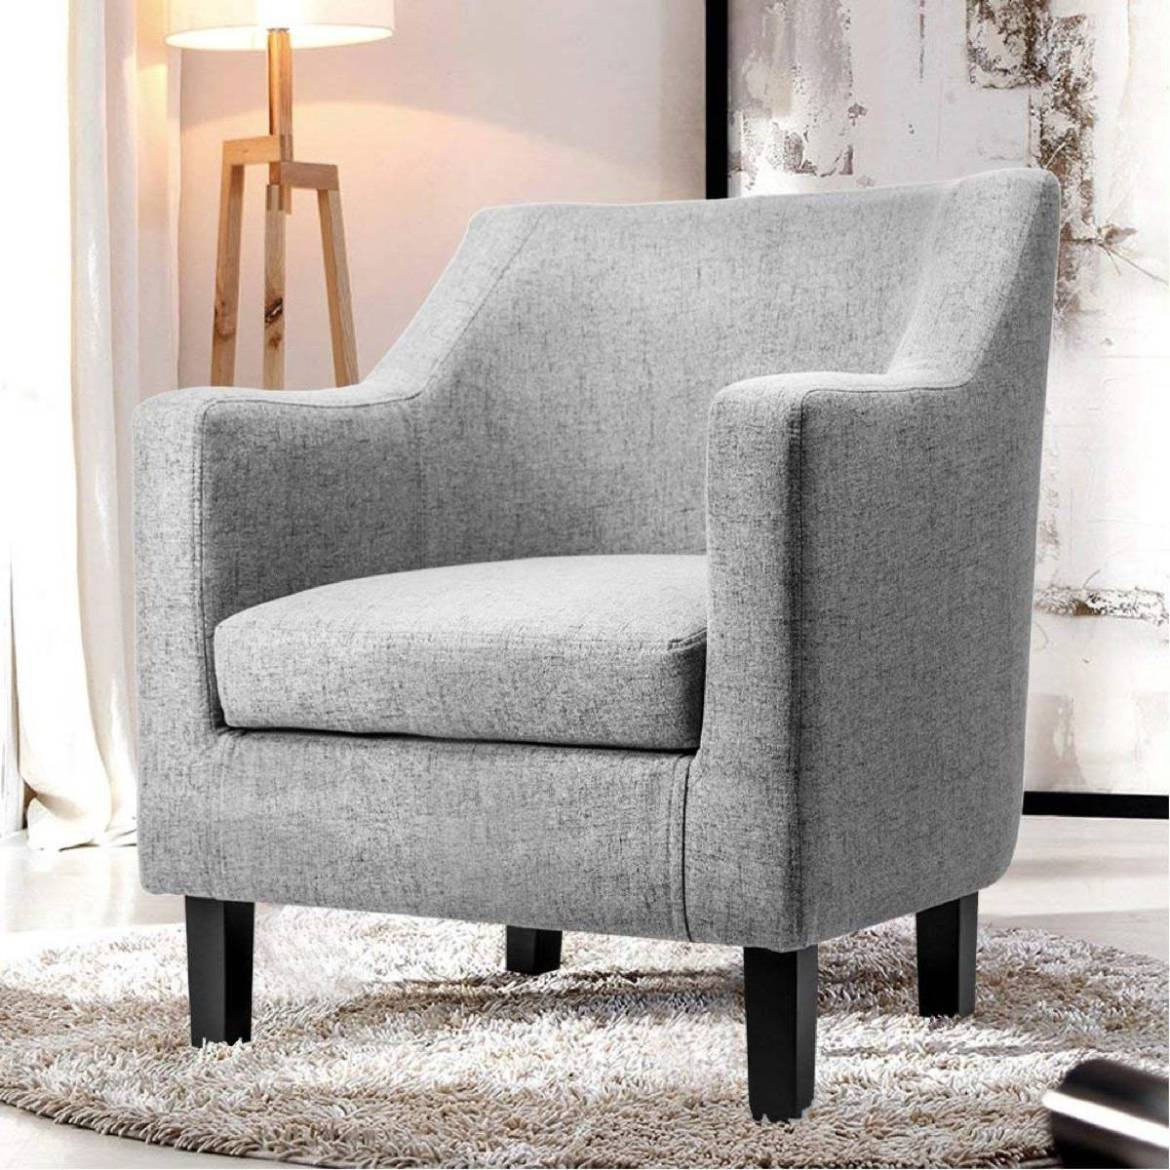 Fabric accent chair from Amazon